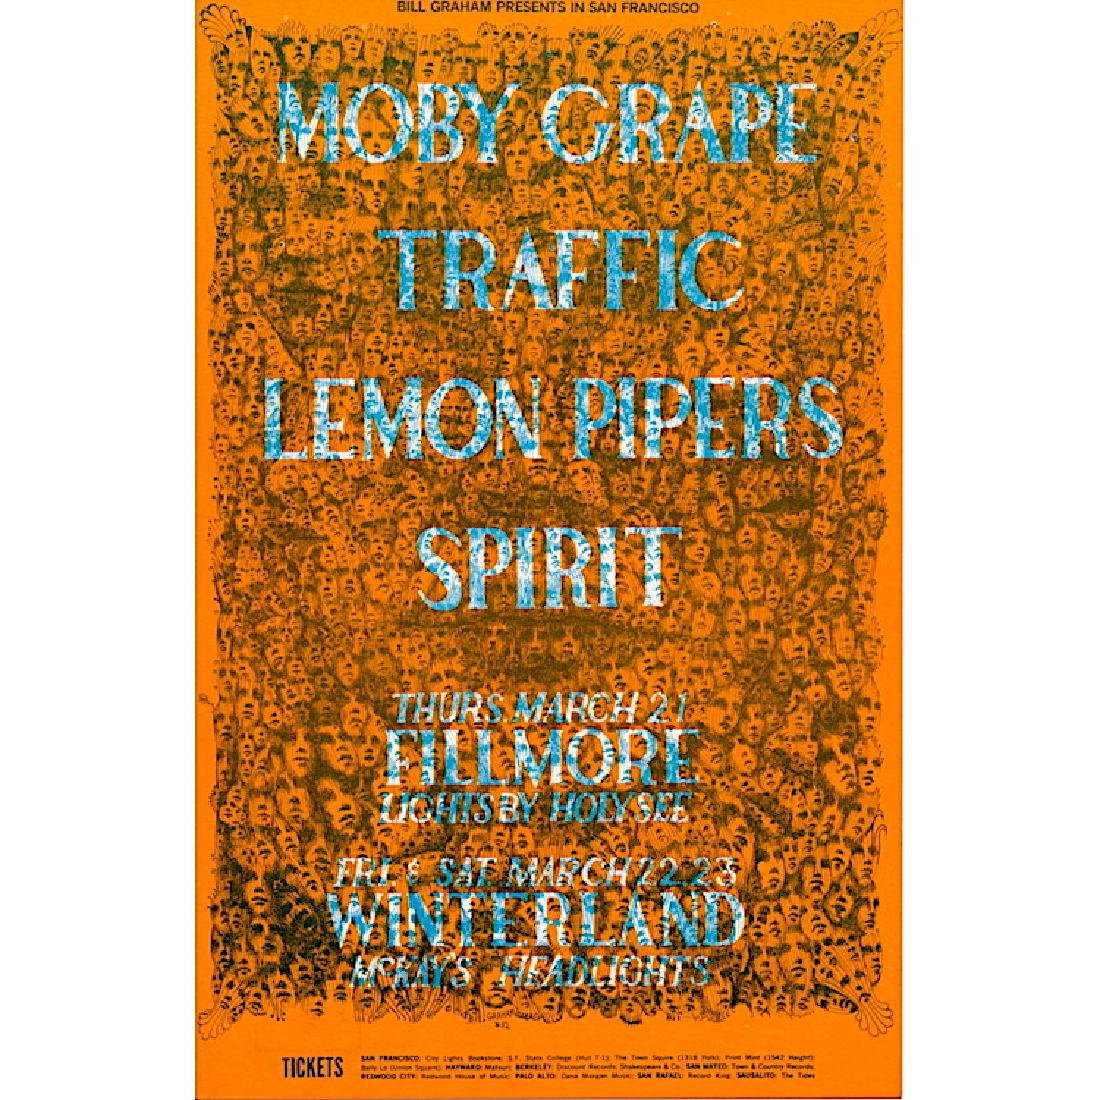 Traffic - Moby Grape - 1968 Fillmore Handbill